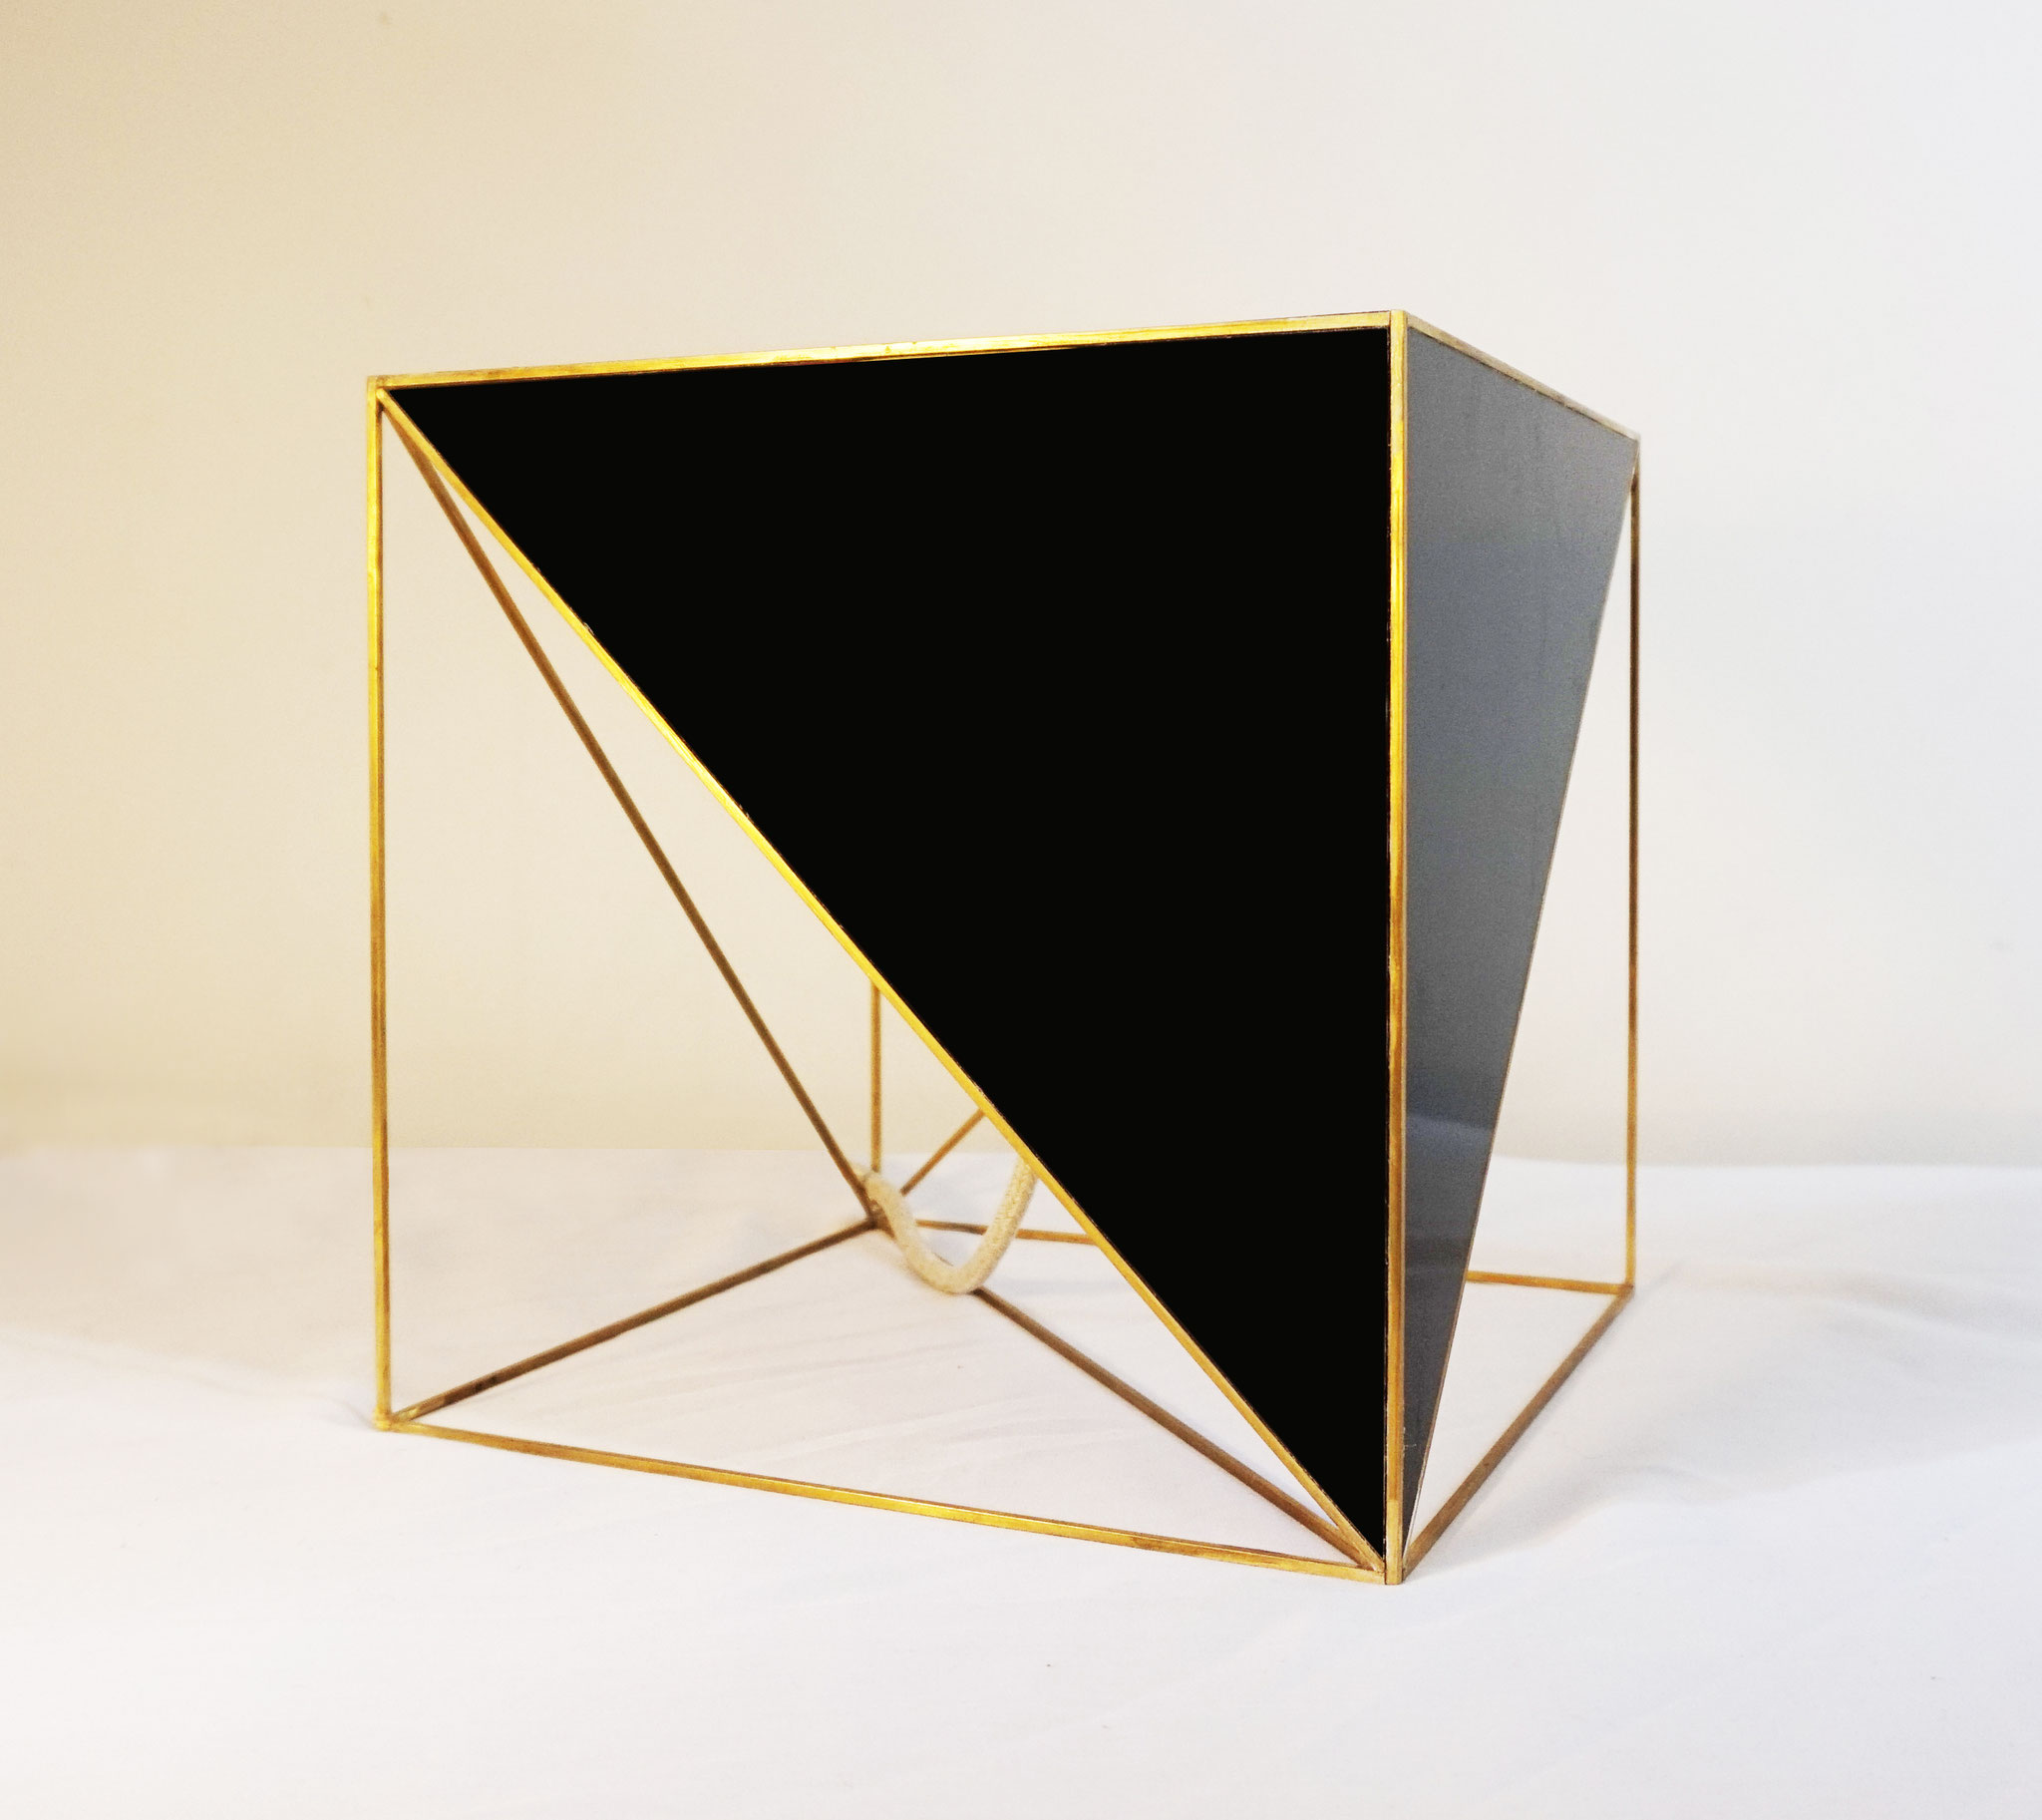 T.No.5 | 25 x 25 x 25 cm | brass, acrylic glass